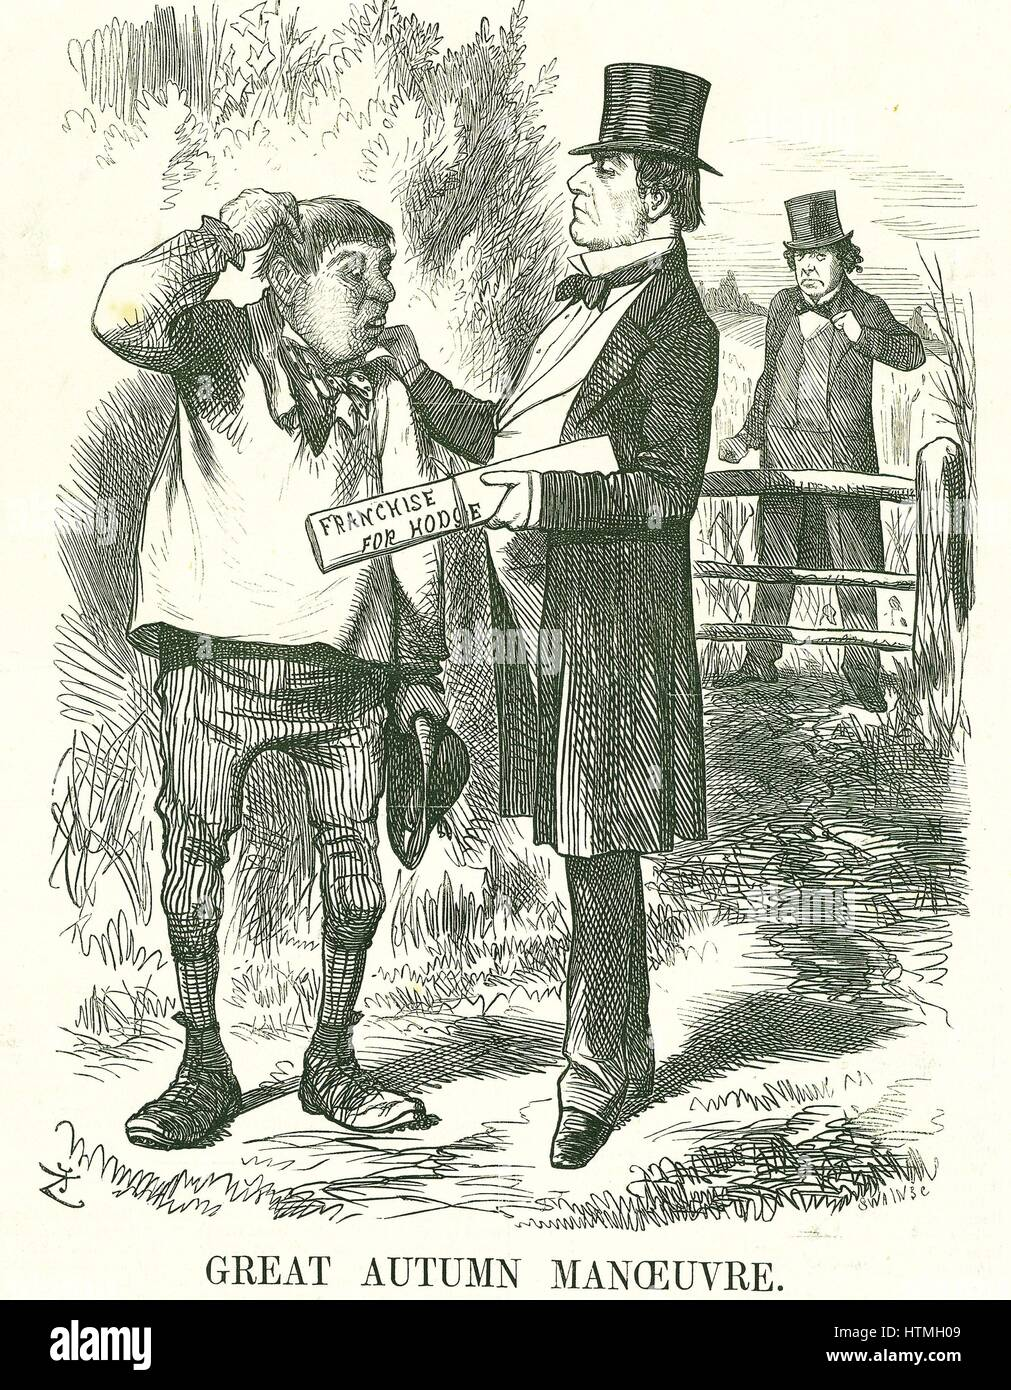 'Great Autumn Manoeuvre': Gladstone thought that eventually the vote must be given to agricultural labourers - Stock Image